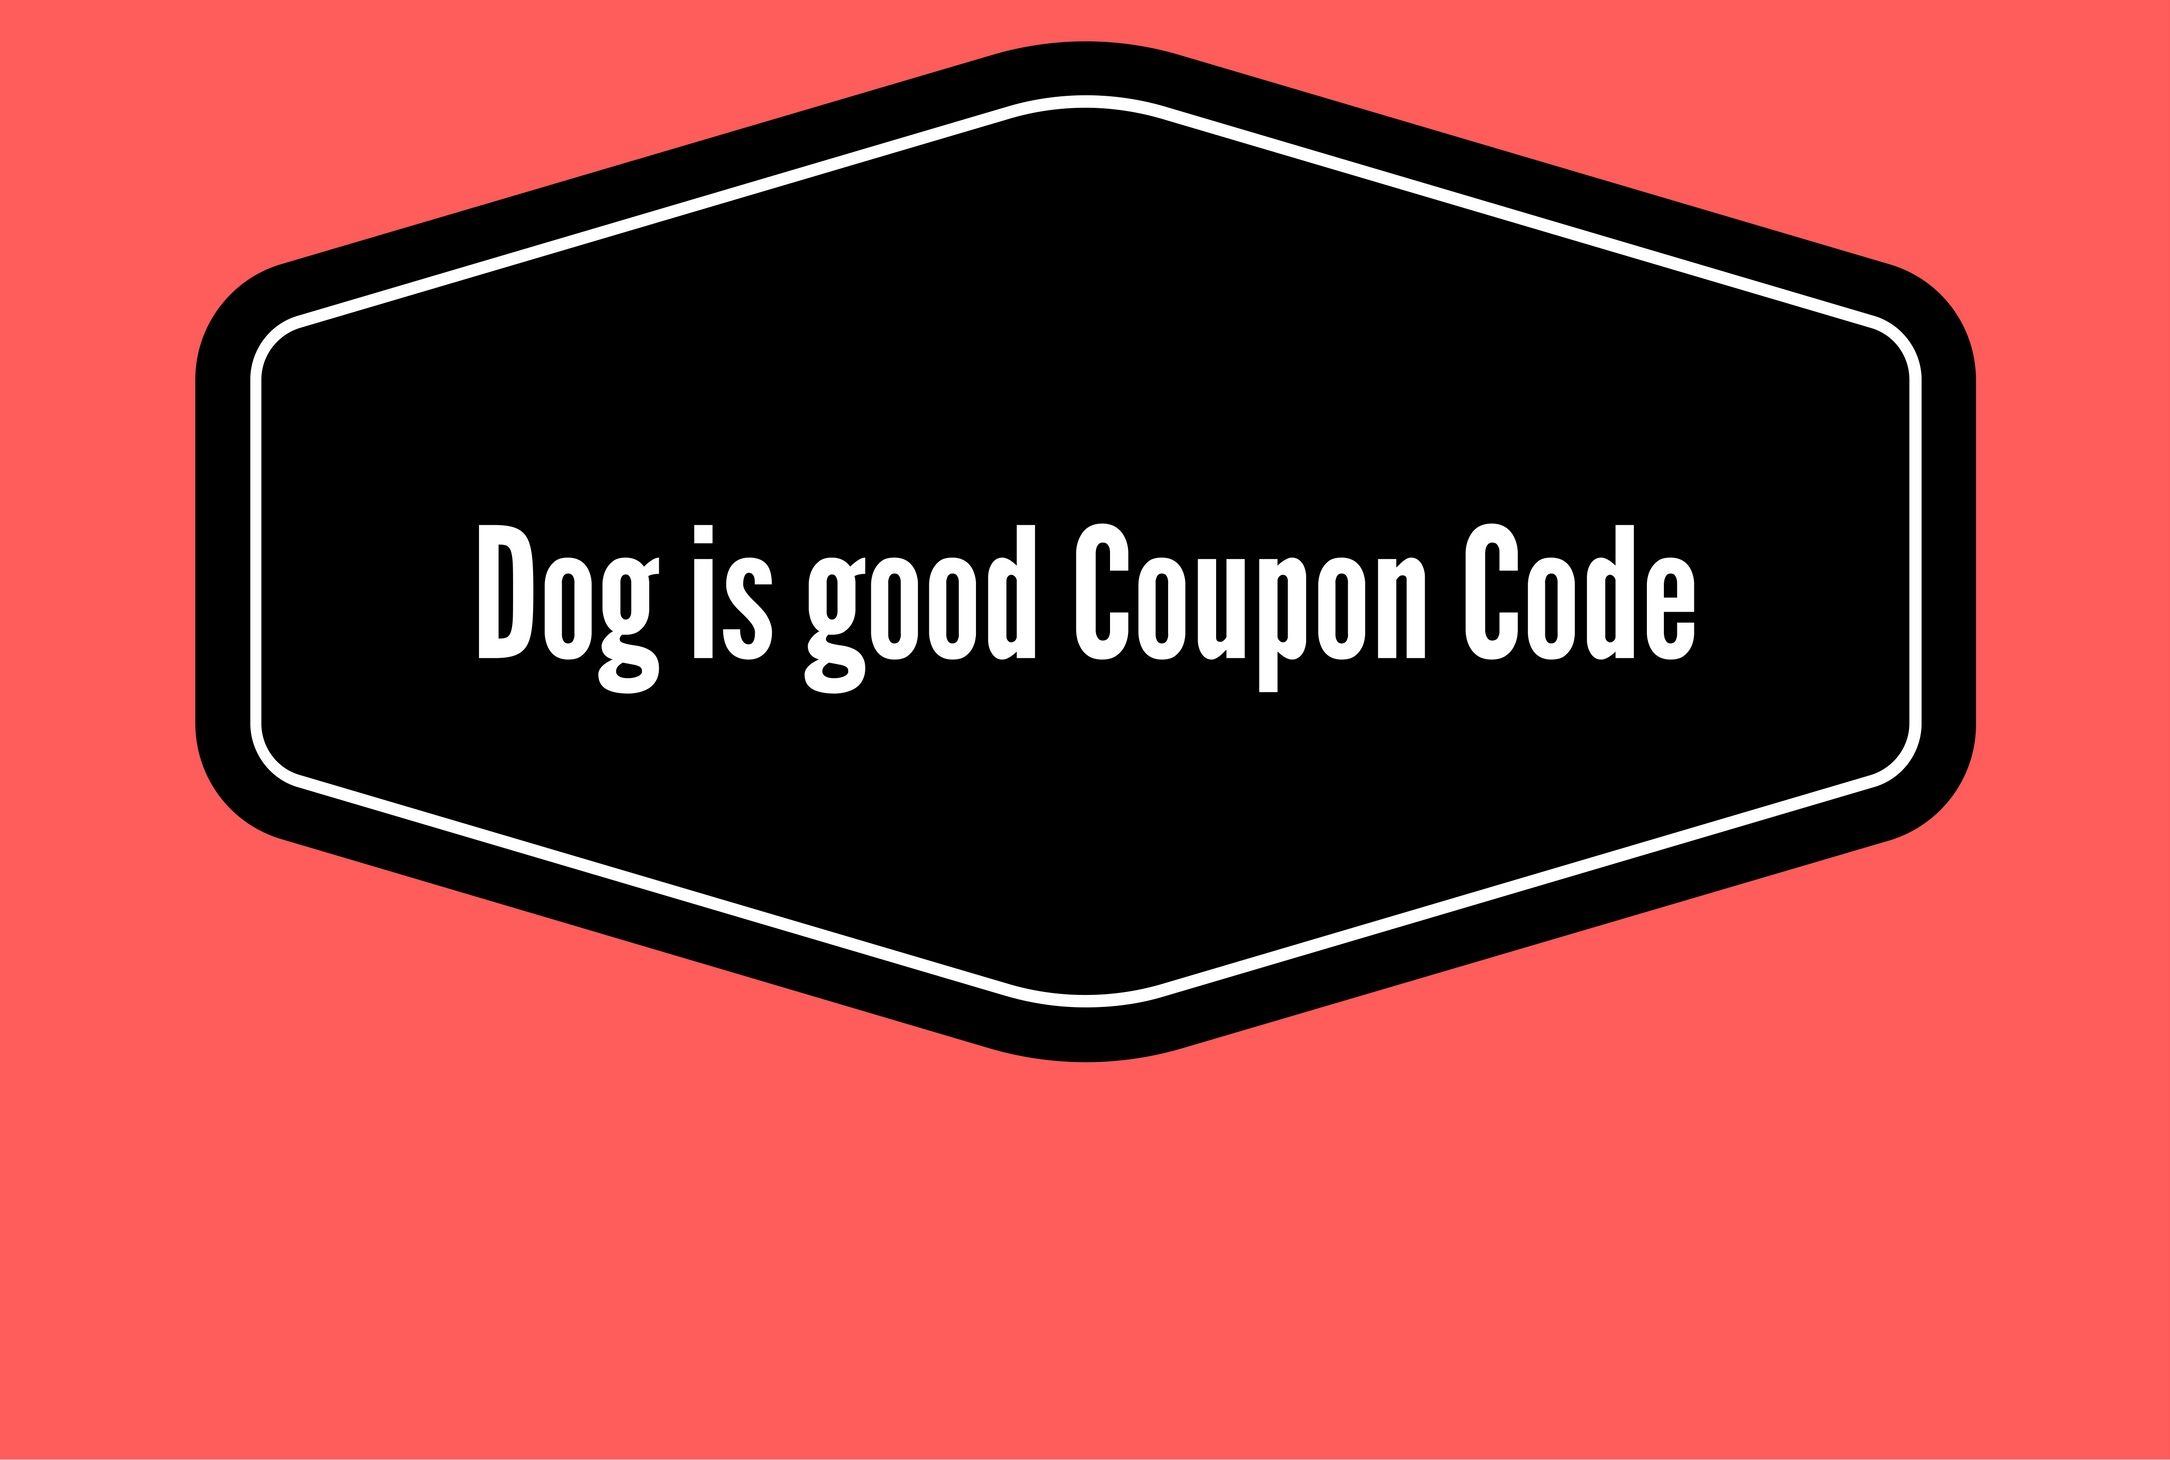 Get Dog Is Good Coupon Code Promo Code Voucher Code Special Discount Offer And Best Deals At Couponcodeon Com Promo Codes Coupon Choies Coding